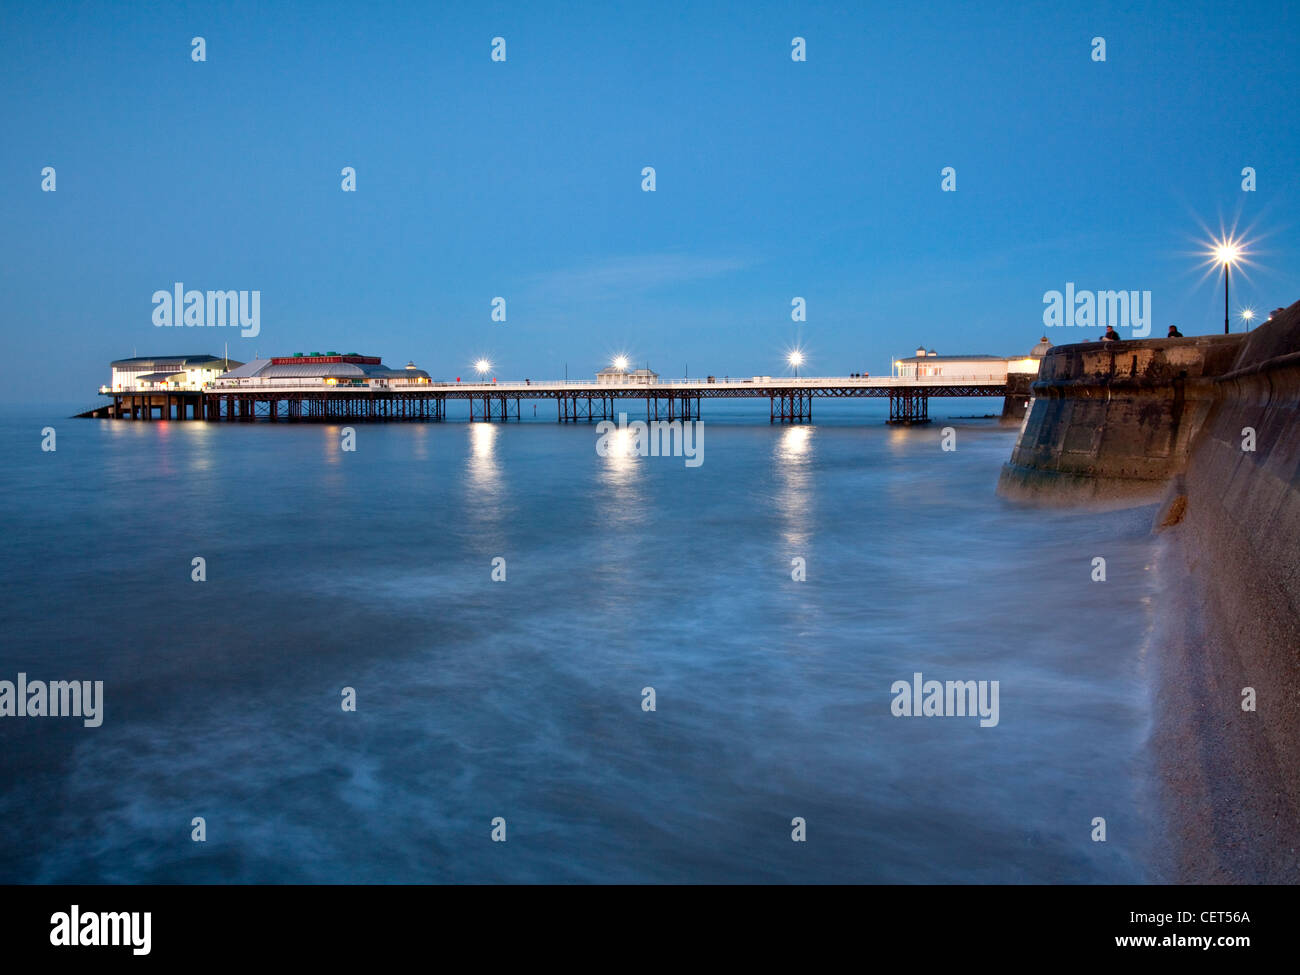 Cromer Pier, home to the Cromer Lifeboat Station and the Pavilion Theatre, on the Norfolk coast at dusk. - Stock Image